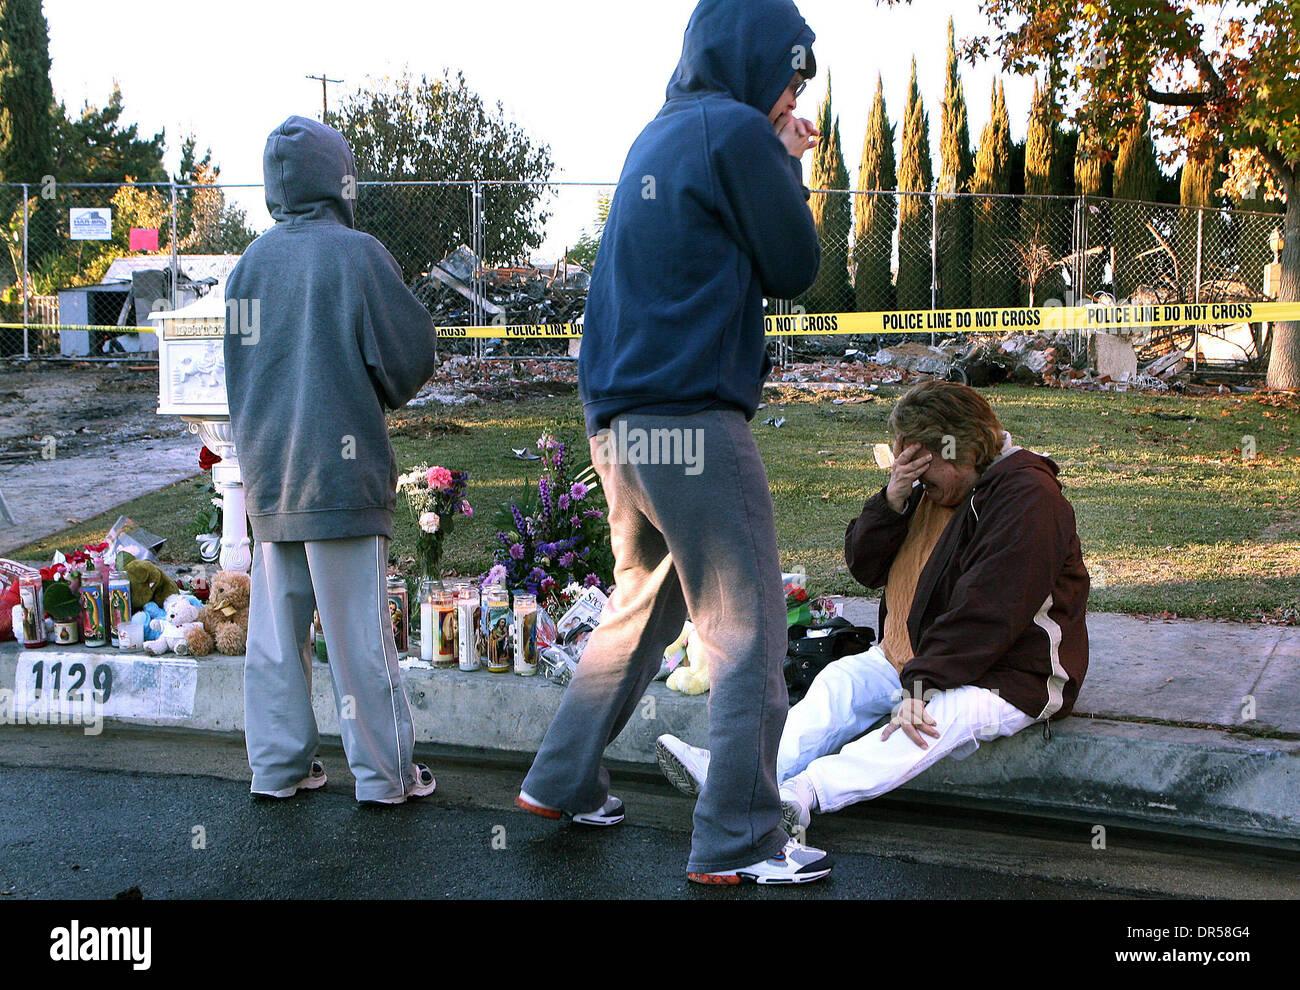 Dec 27, 2008 - Covina, California, USA - DOLORES VILLA, Right, breaks down along with her daughter DONNA JOHNSON and 11 year-old grandson DWIGHT JOHNSON who's aunt and uncle were killed visits the property on Saturday December 27, 2008, in Covina. Bruce Jeffrey Pardo, dressed in a Santa suit, fatally shot nine people during a Christmas Eve party at the Ortega family home before set - Stock Image